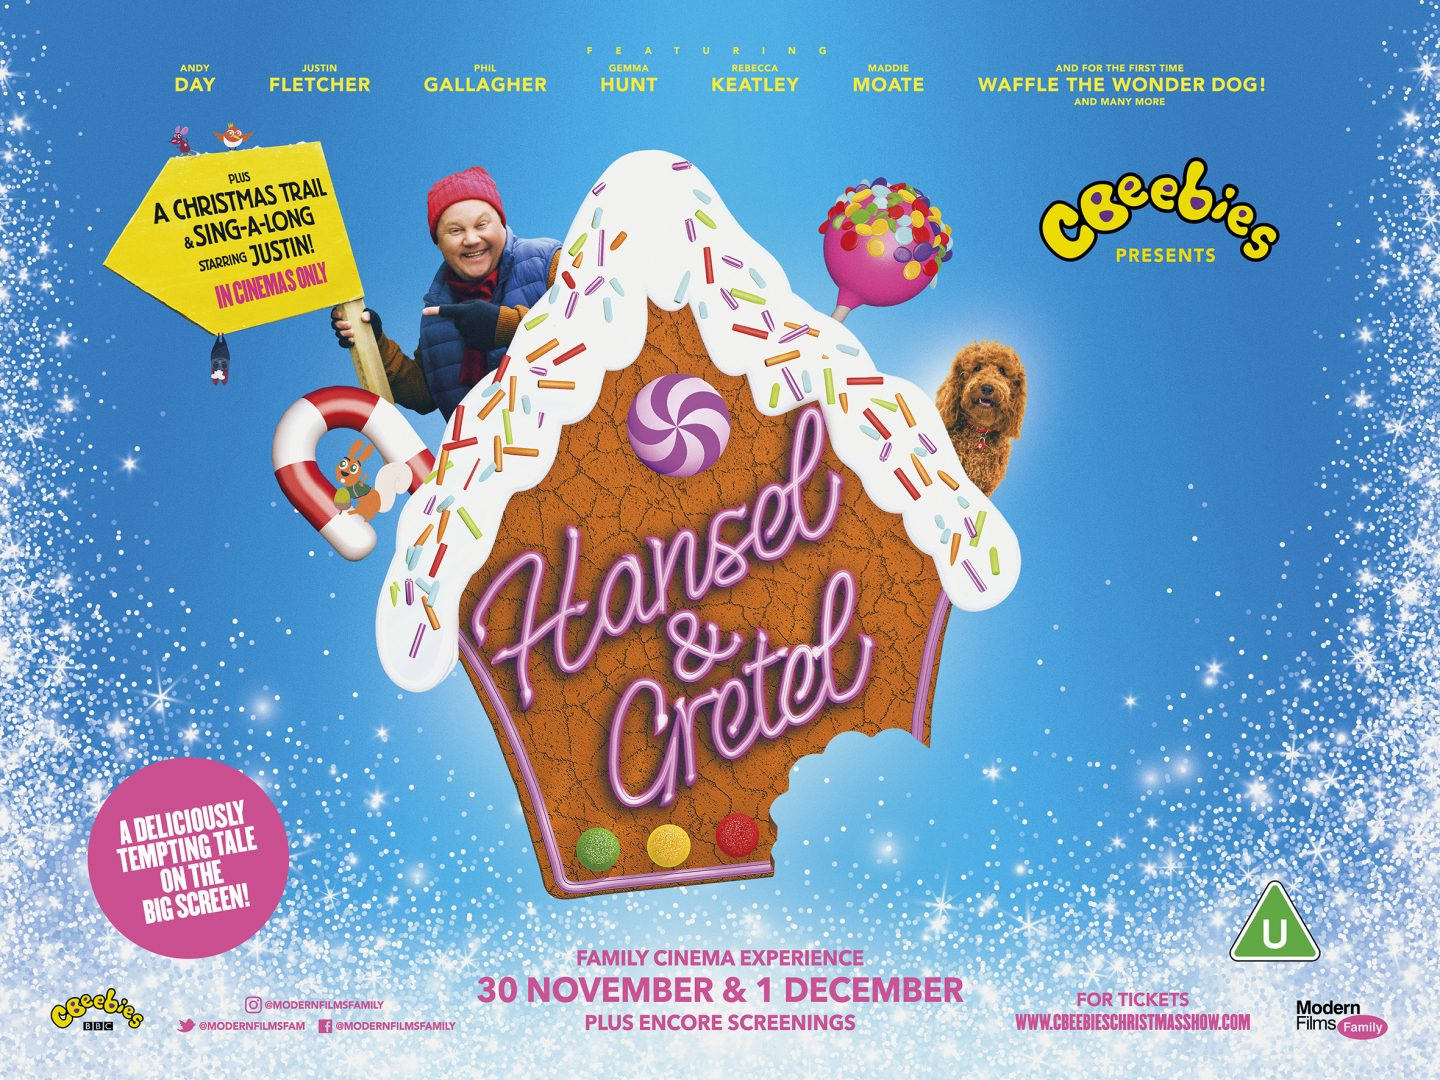 CBeebies Hansel and Gretel